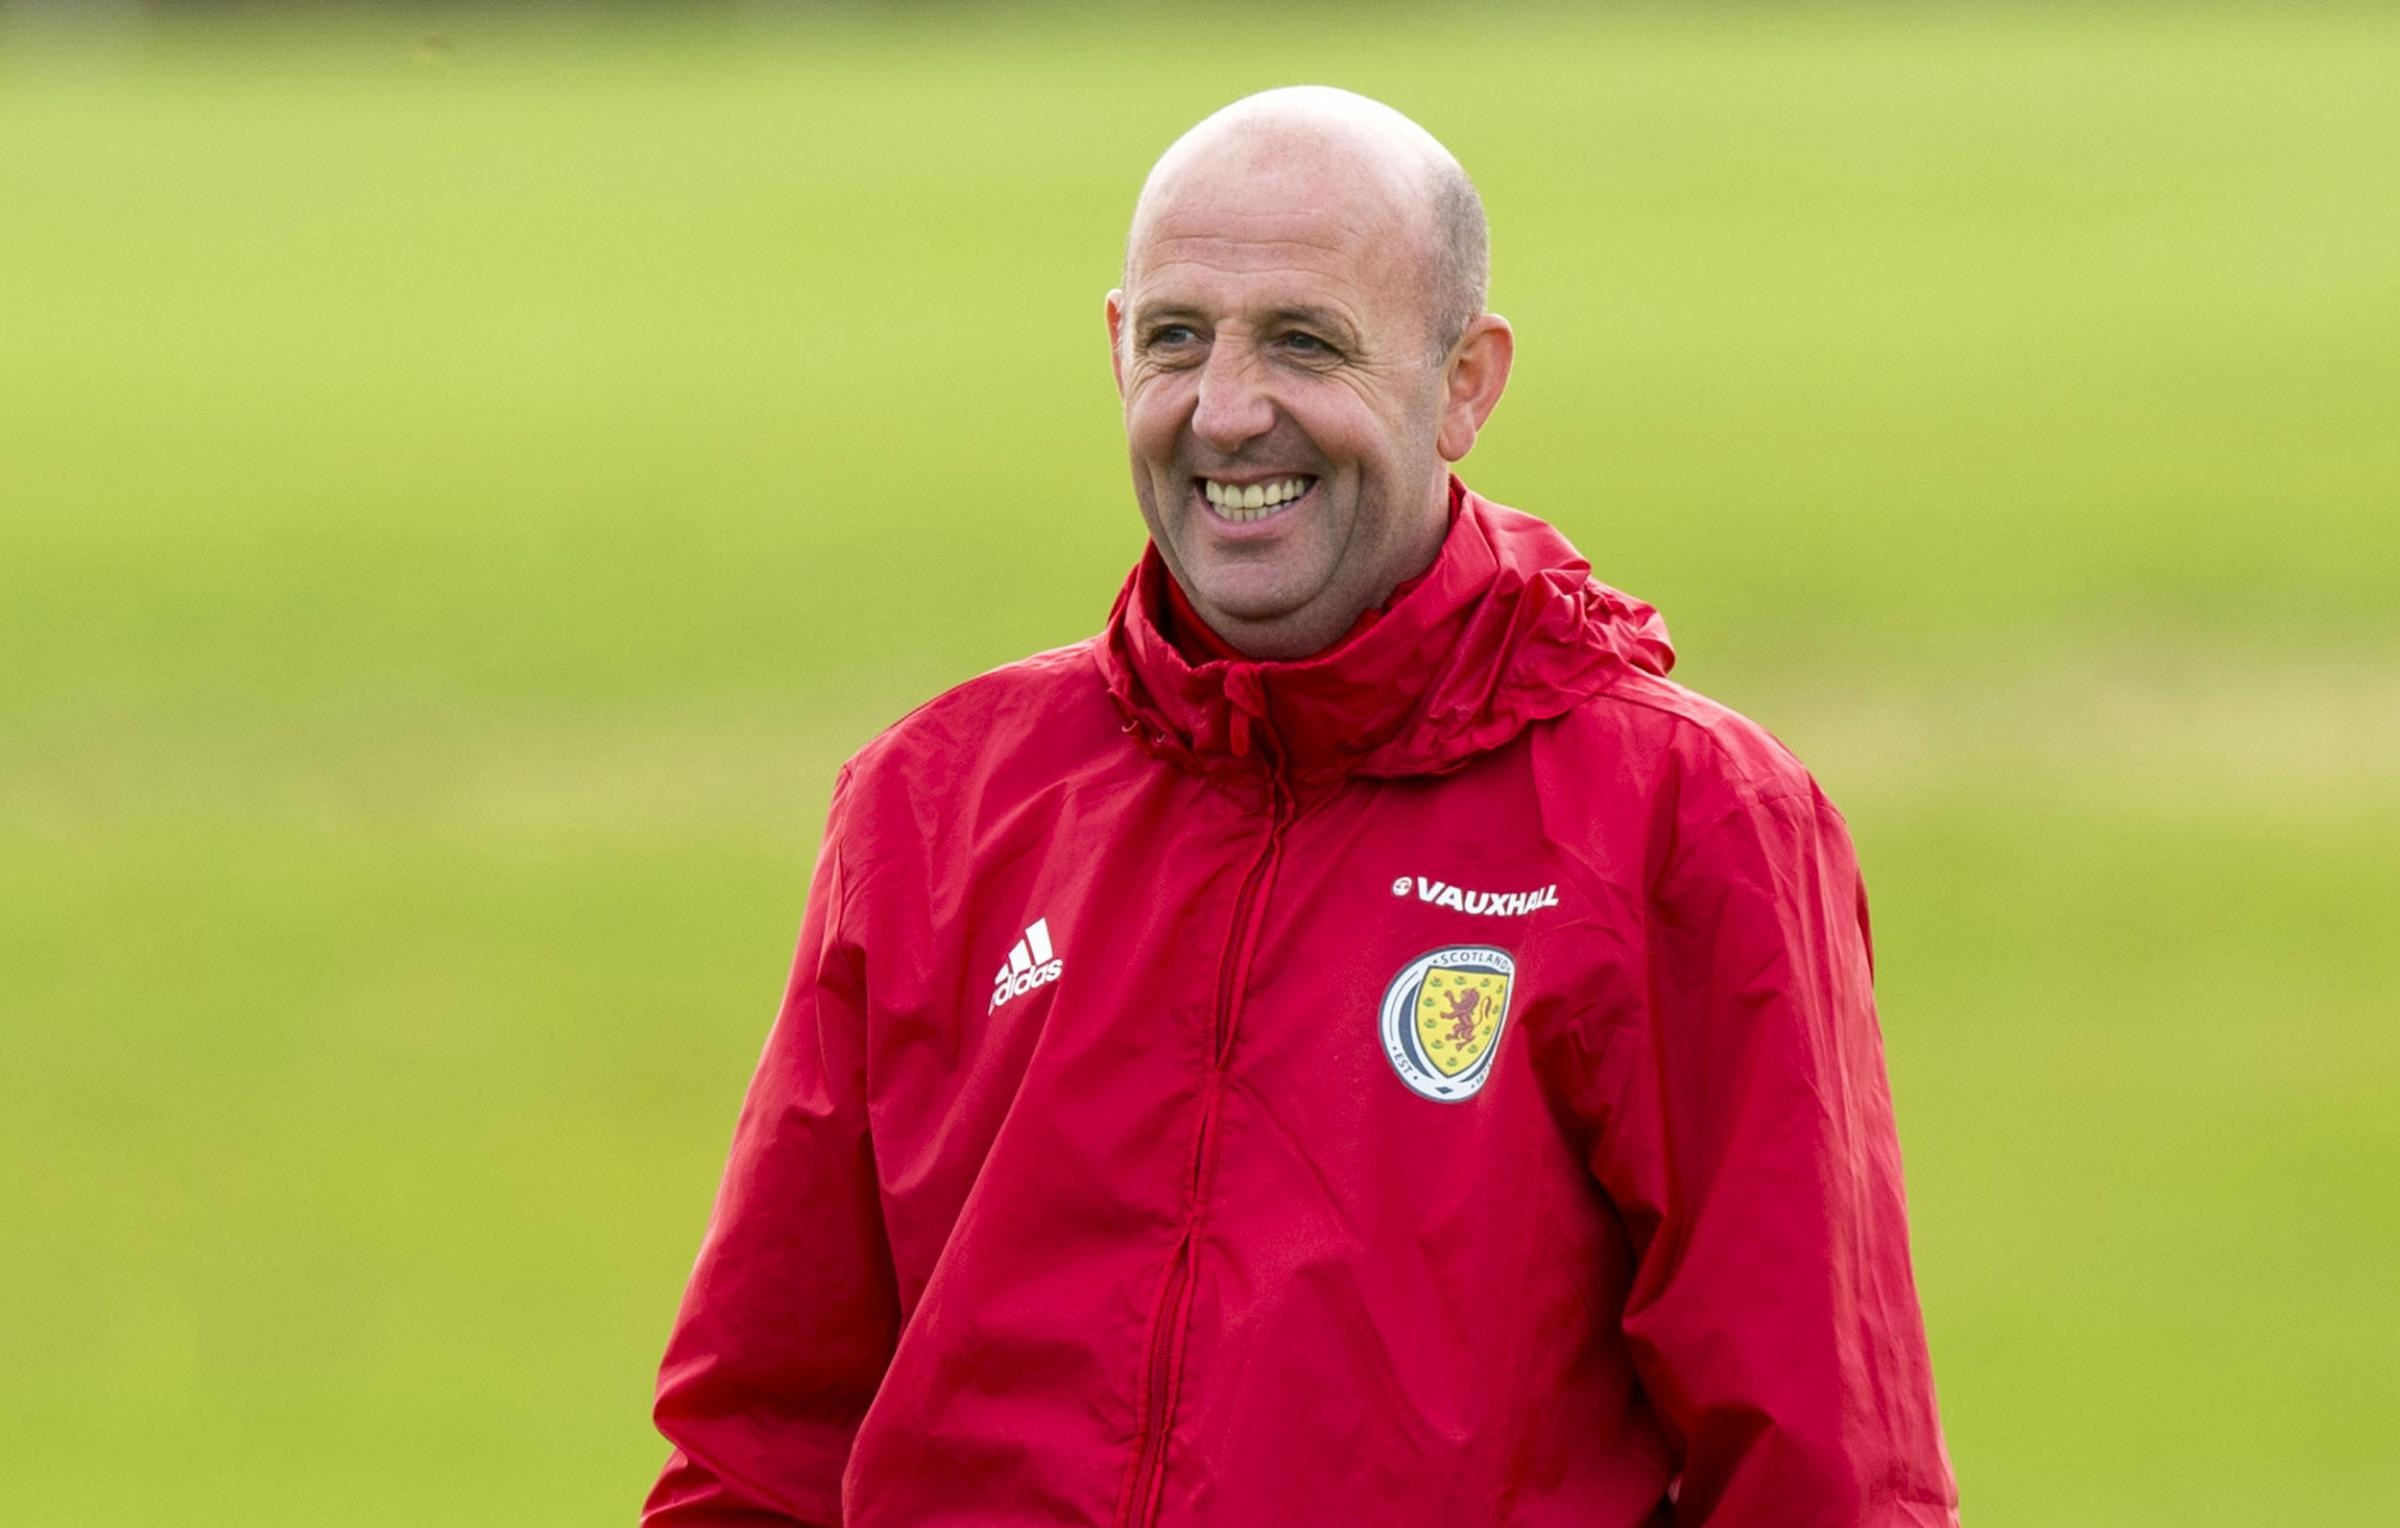 Gary McAllister spoke about his new role alongside his former teammate